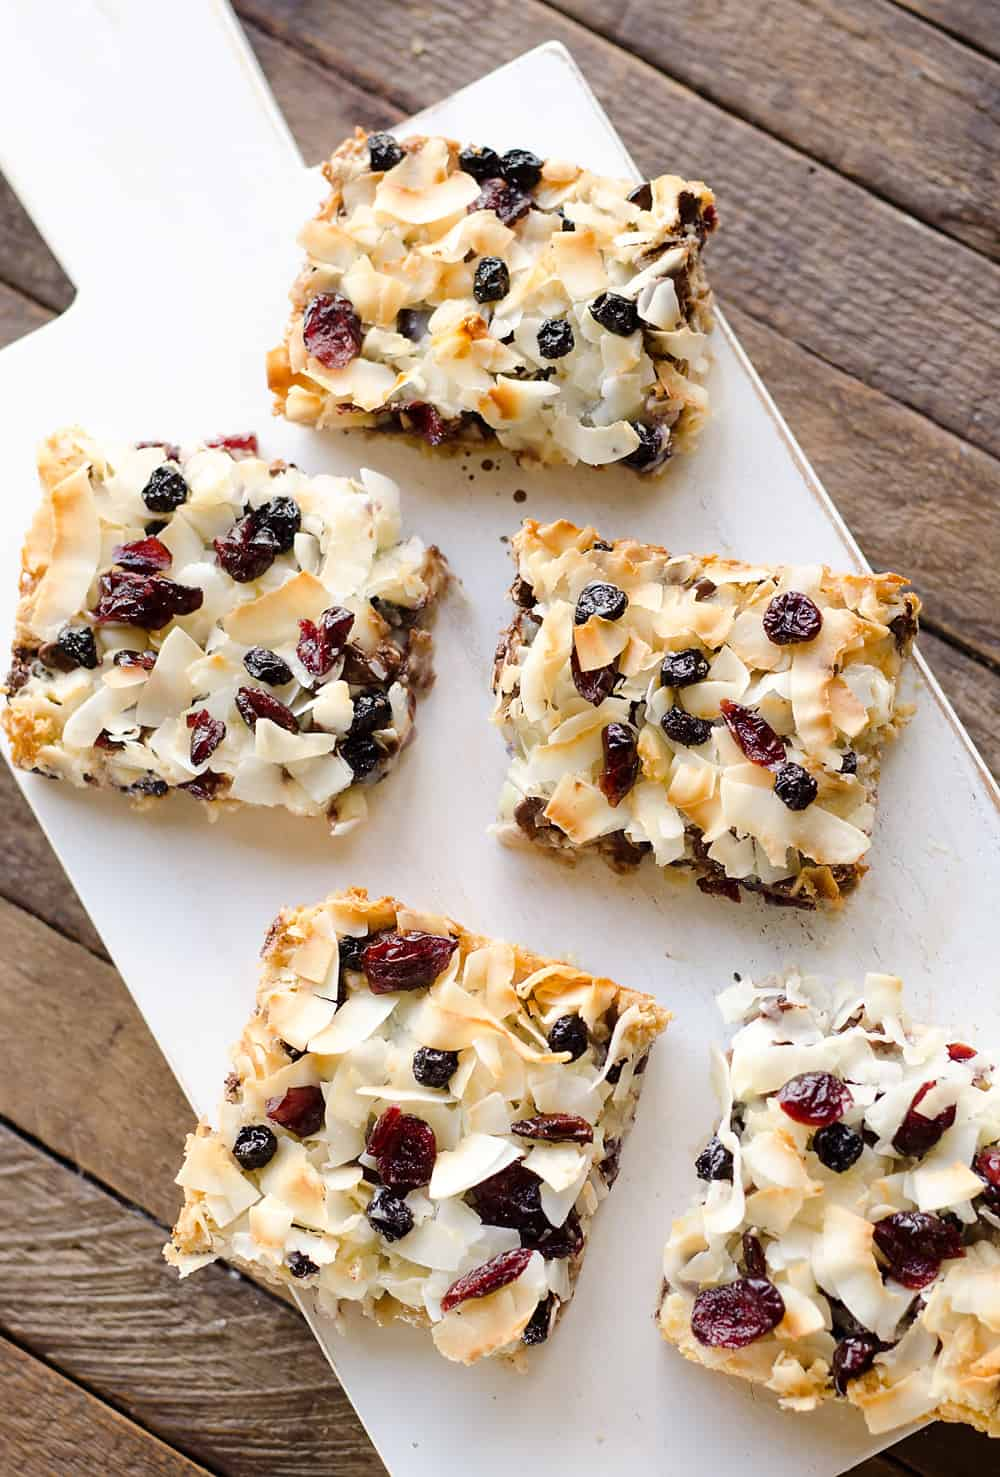 Berry Coconut Magic Bars are amazingly easy to whip together and have the great flavors of chocolate and dried berries for a fun twist on a classic dessert.